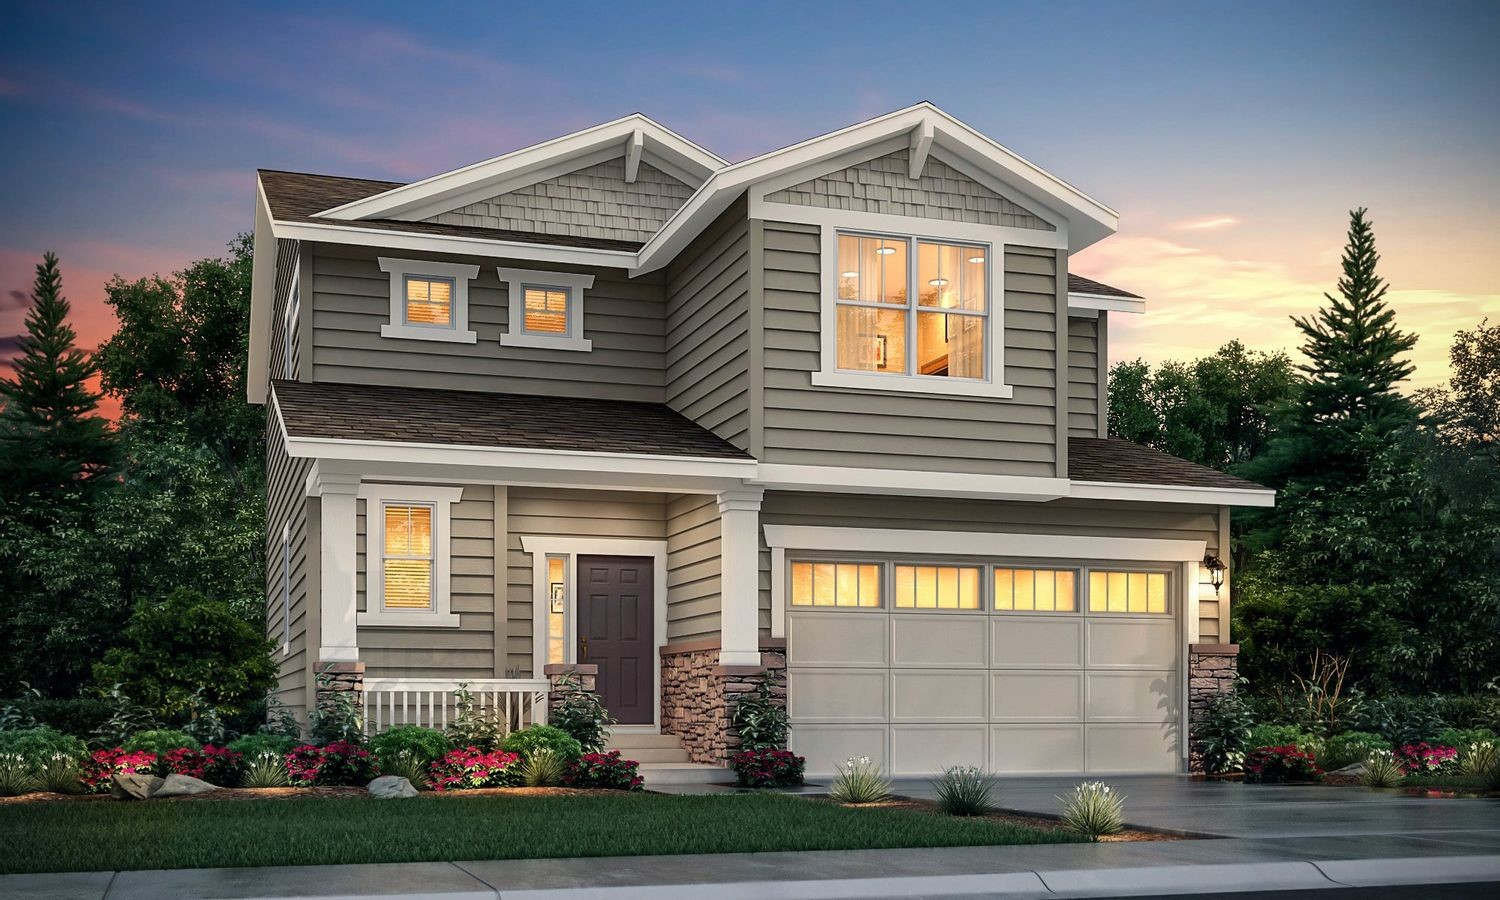 Ready To Build Home In Gold Creek Valley - The Pioneer Collection Community